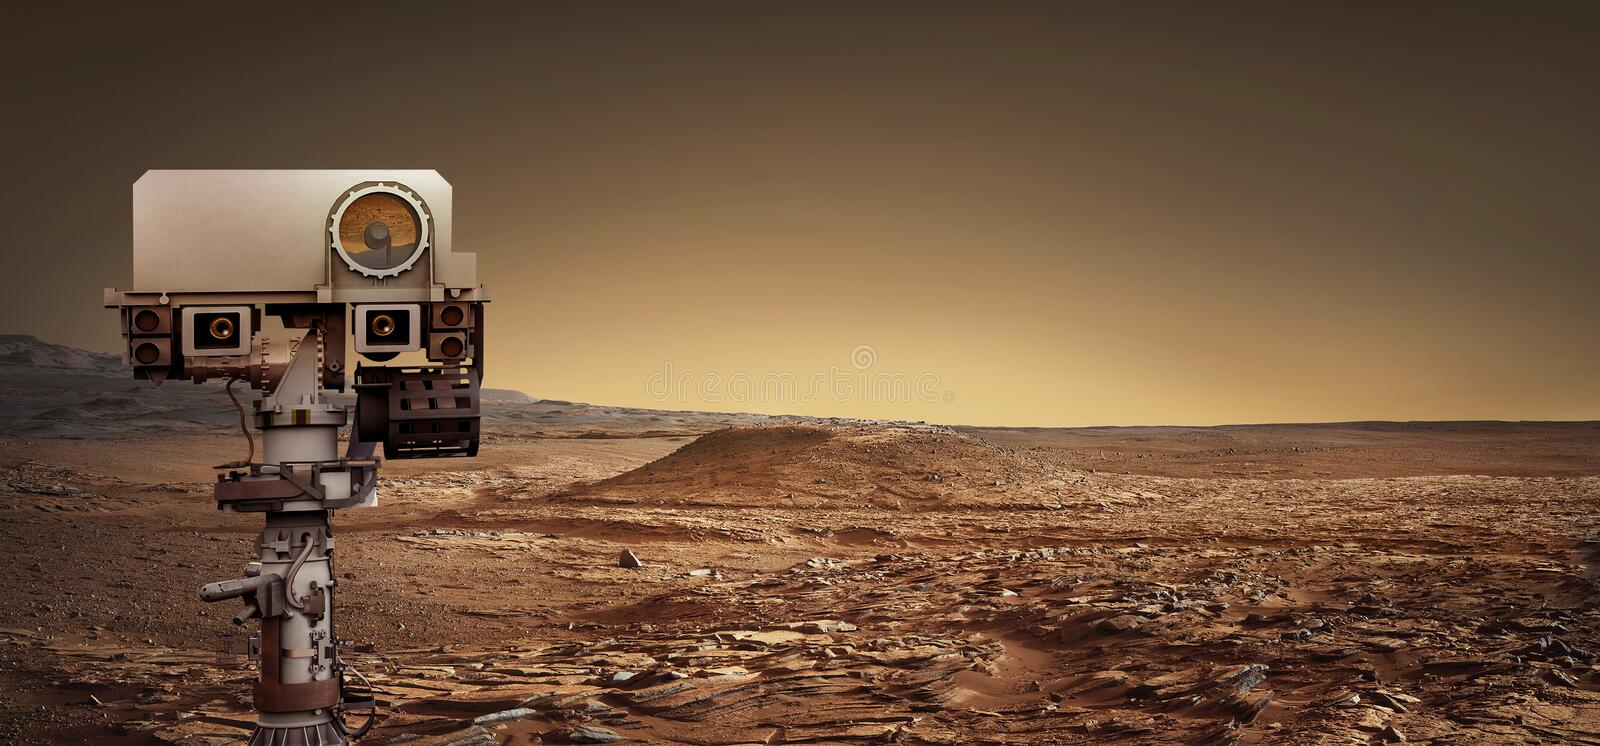 Mars Rover explores the red planet. Elements of this image furnished by NASA. stock images